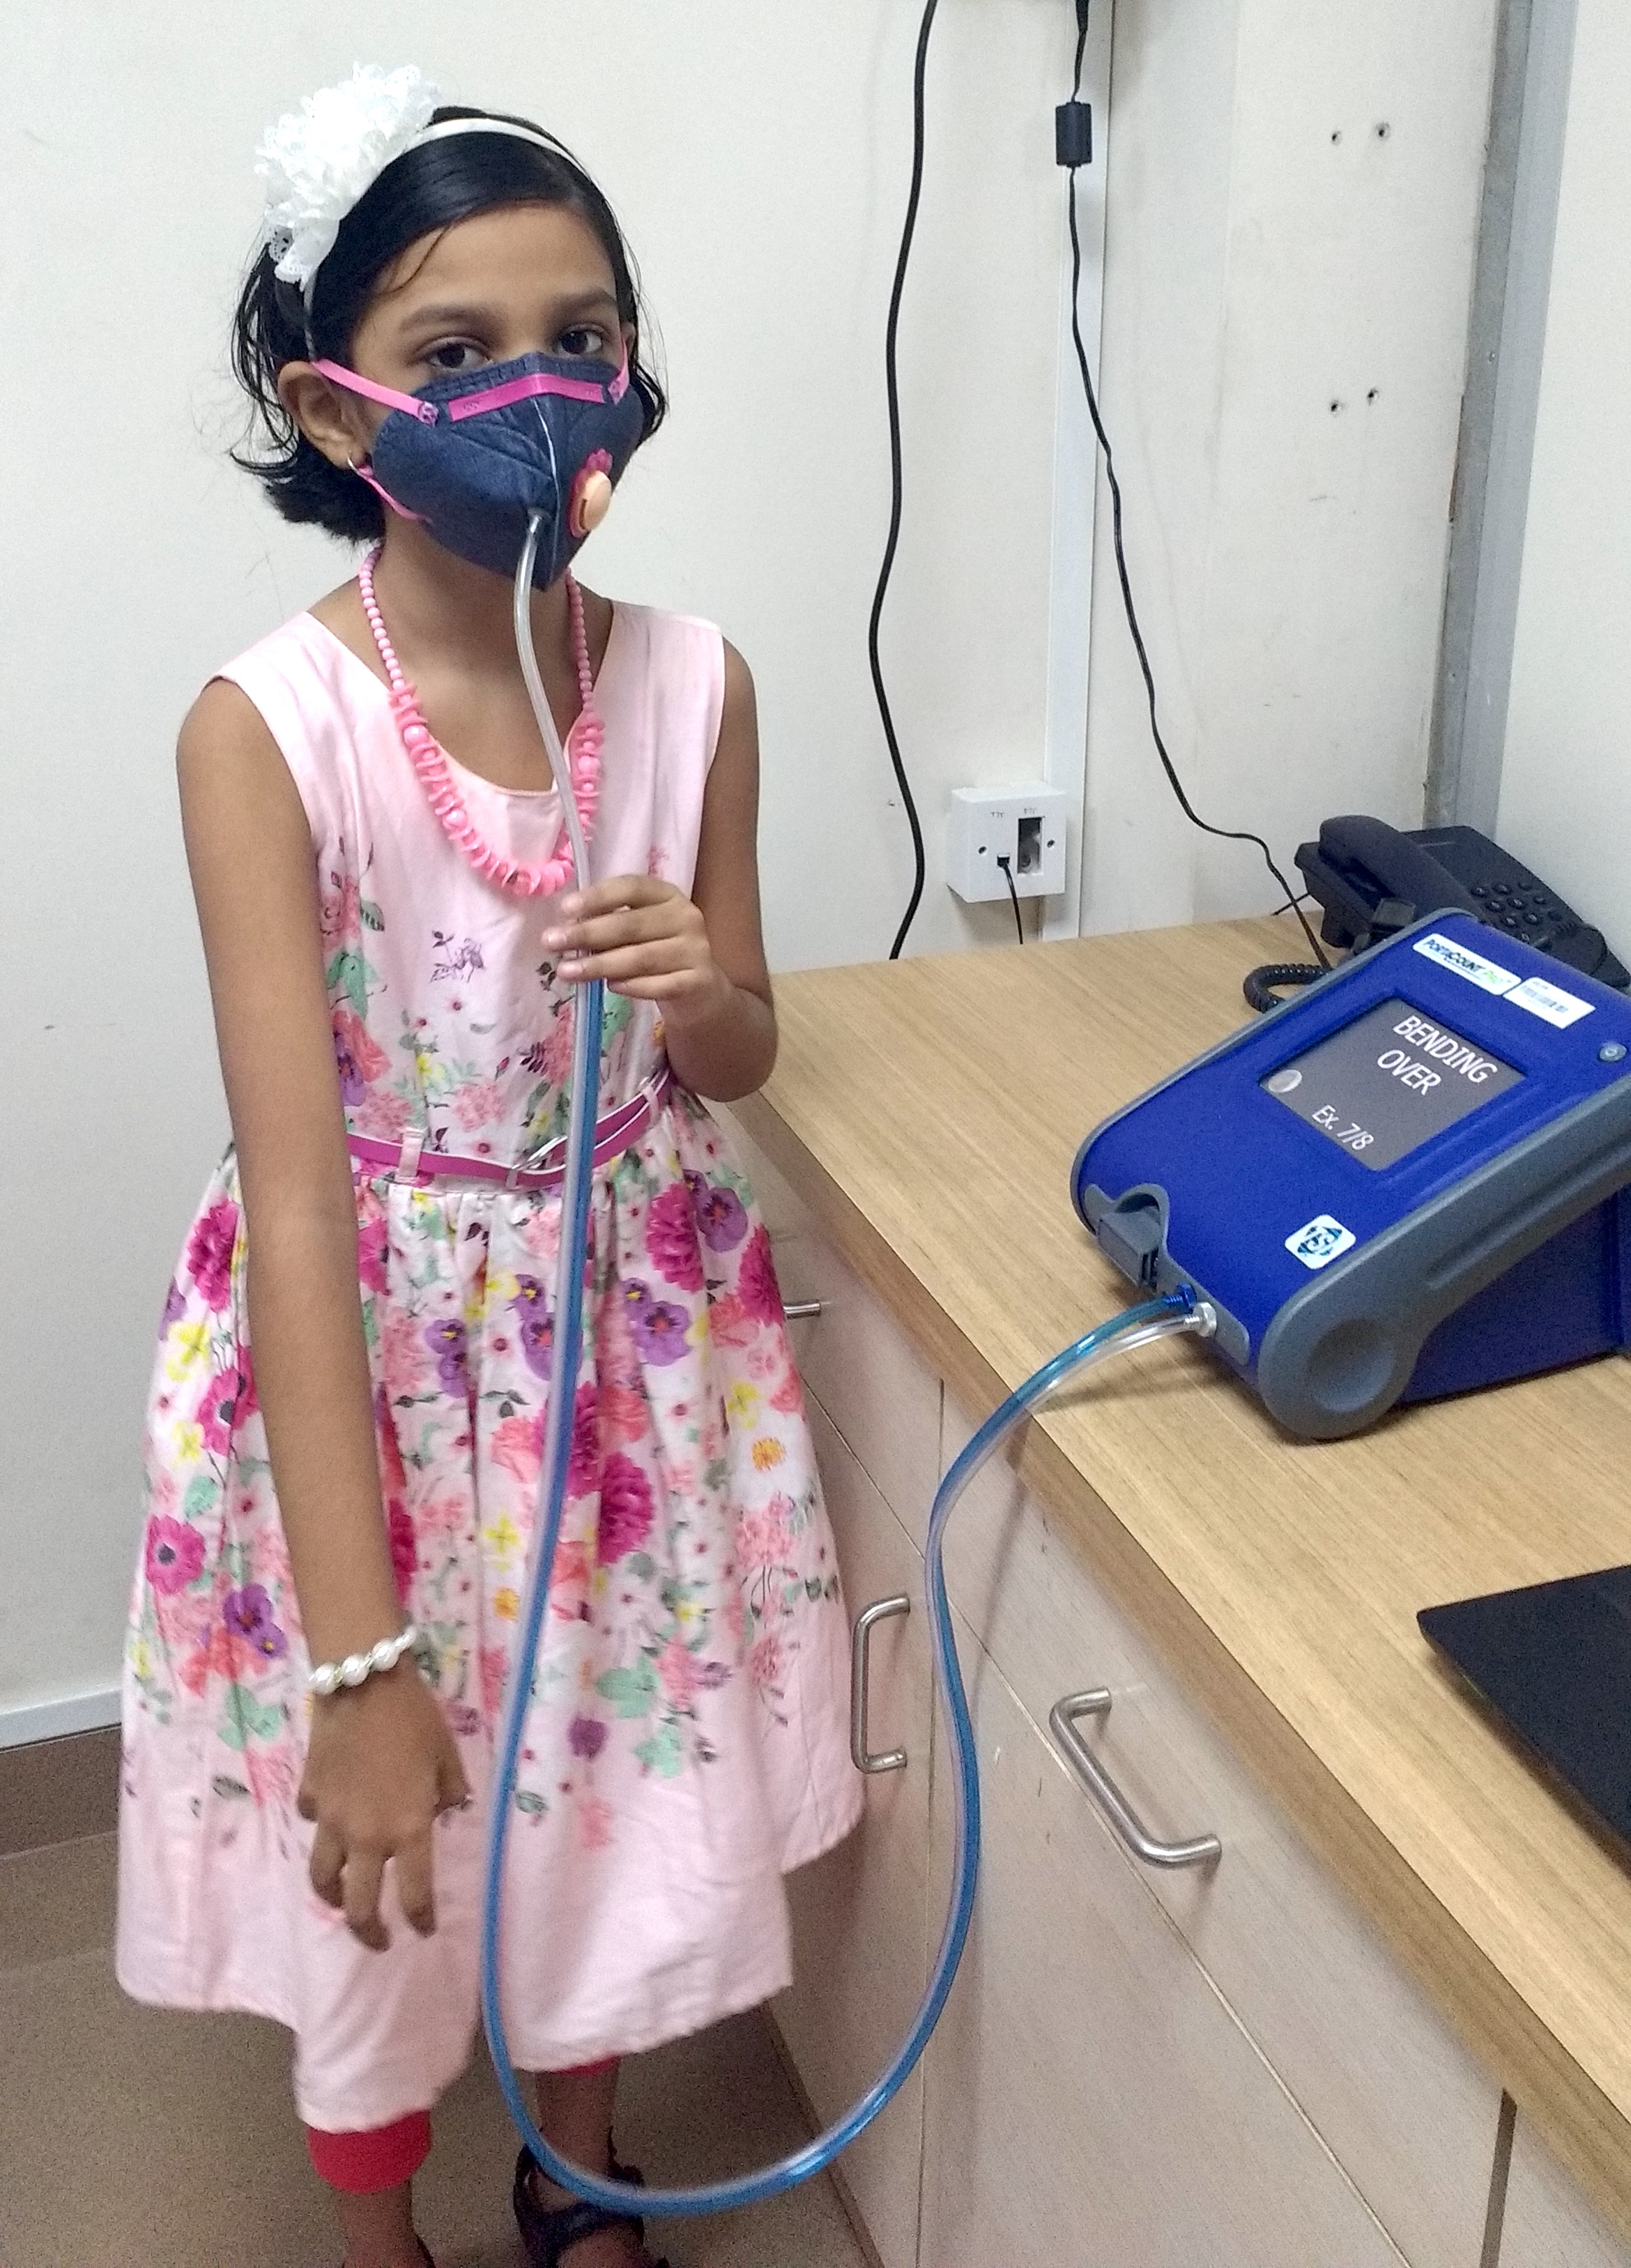 Children's Mask Fit Test